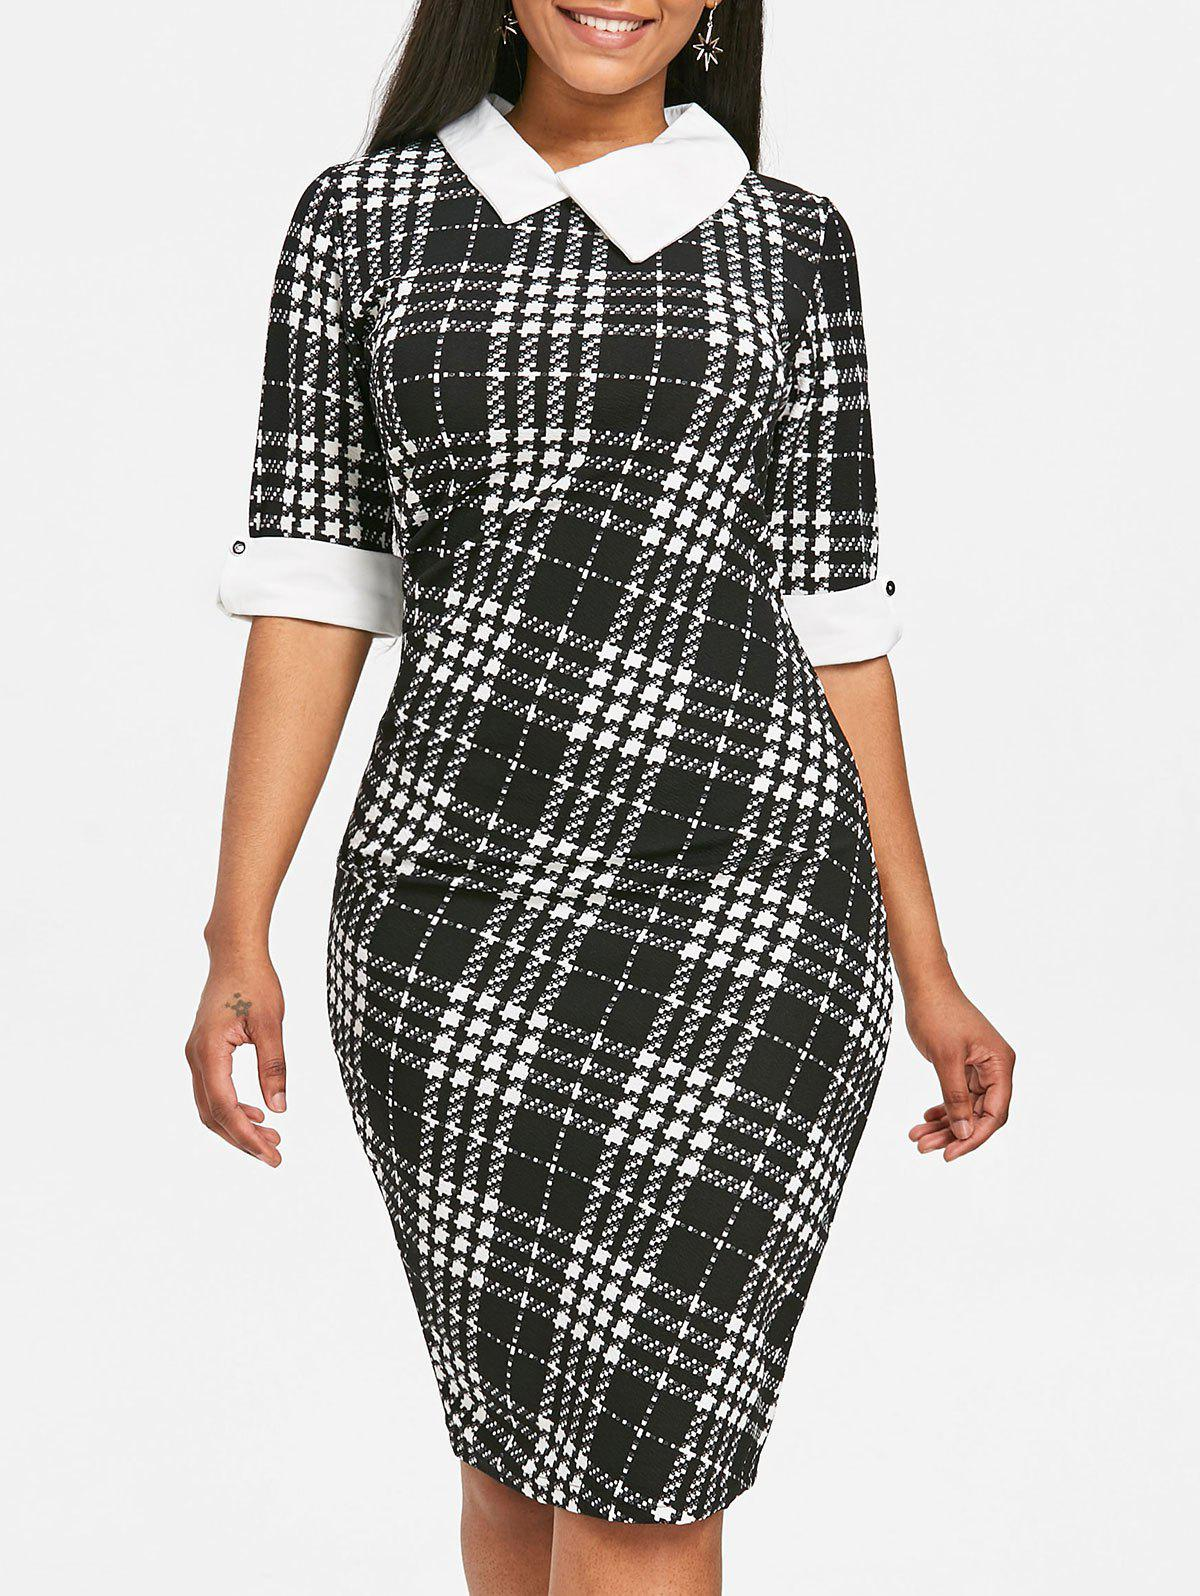 Houndstooth Print Half Sleeve Bodycon Dress - BLACK S